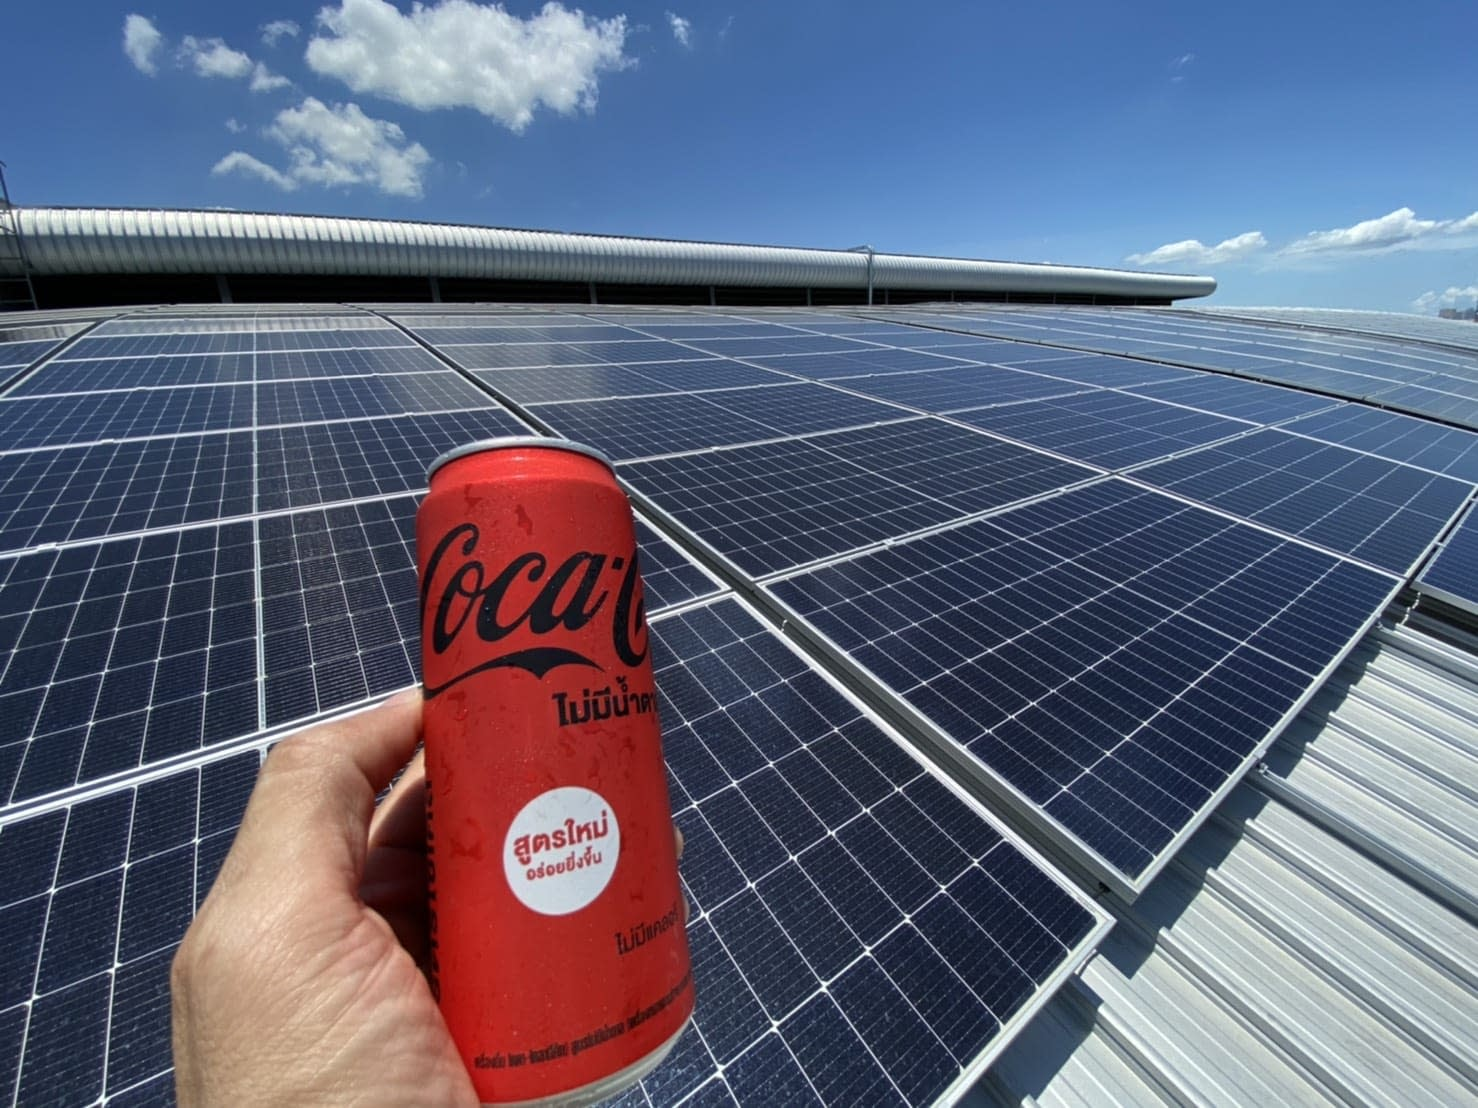 """The """"Best Coke ever"""" for Constant Energy after signing corporate PPAs totaling 6 MW with Coca-Cola bottler ThaiNamthip"""